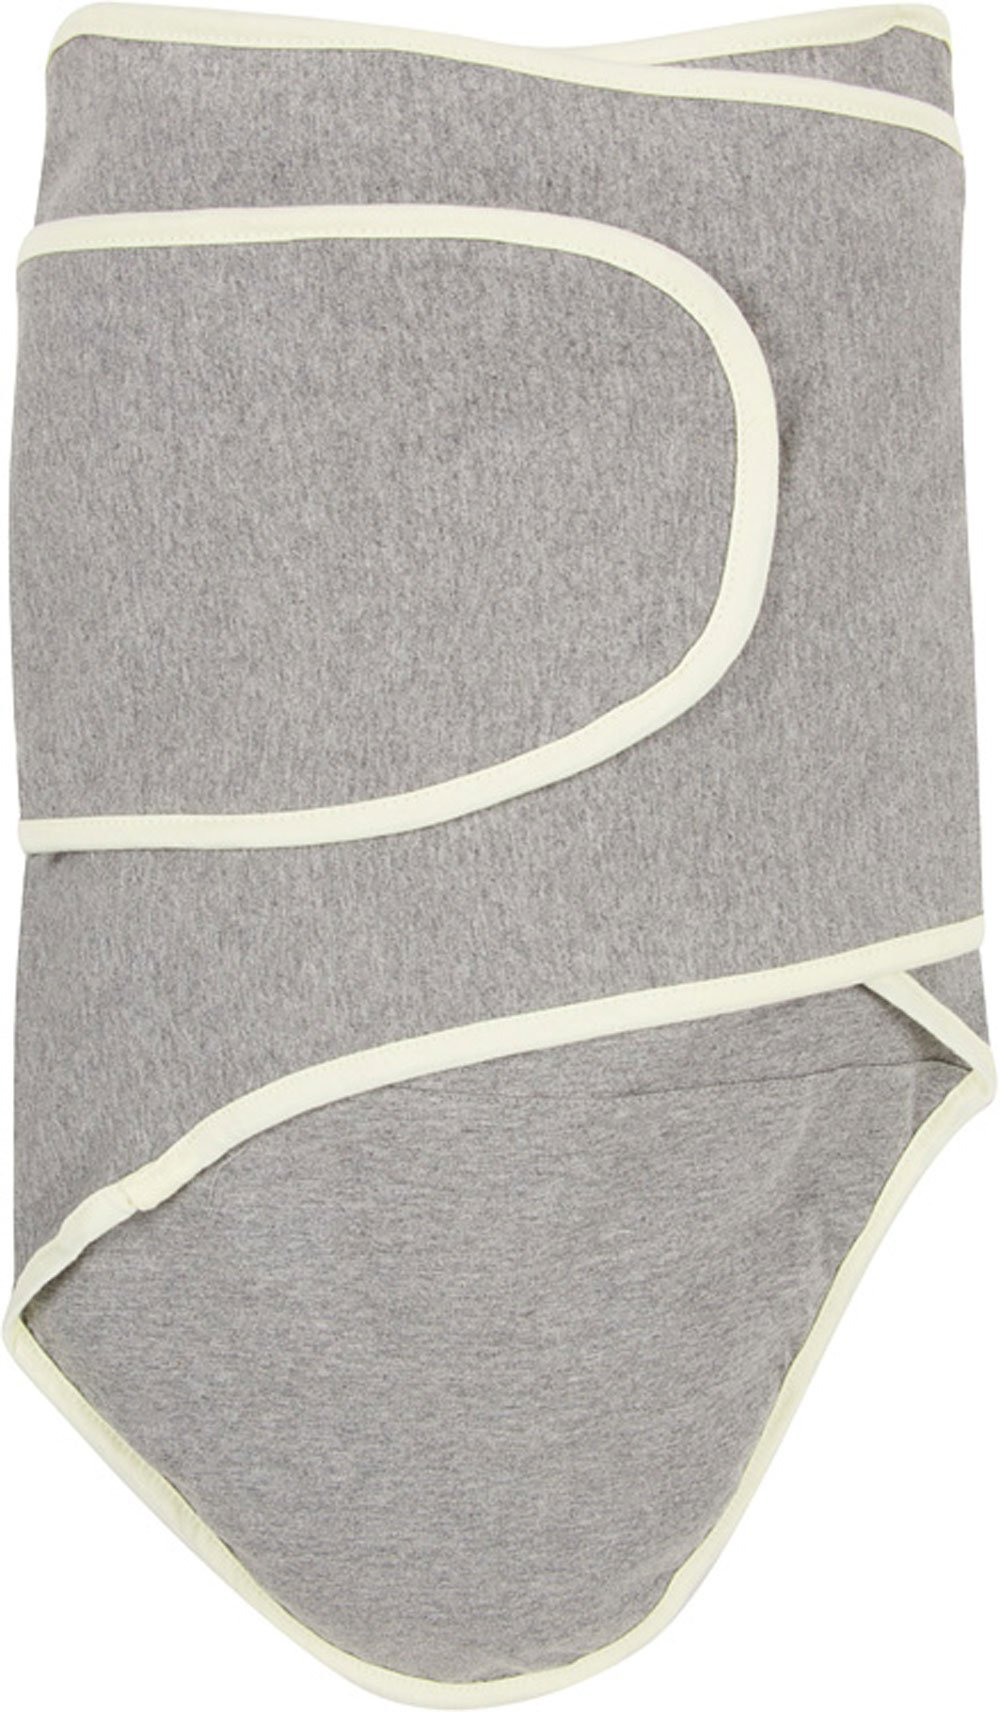 Miracle Blanket Swaddle Unisex Baby, Grey with Yellow Trim by Miracle Blanket